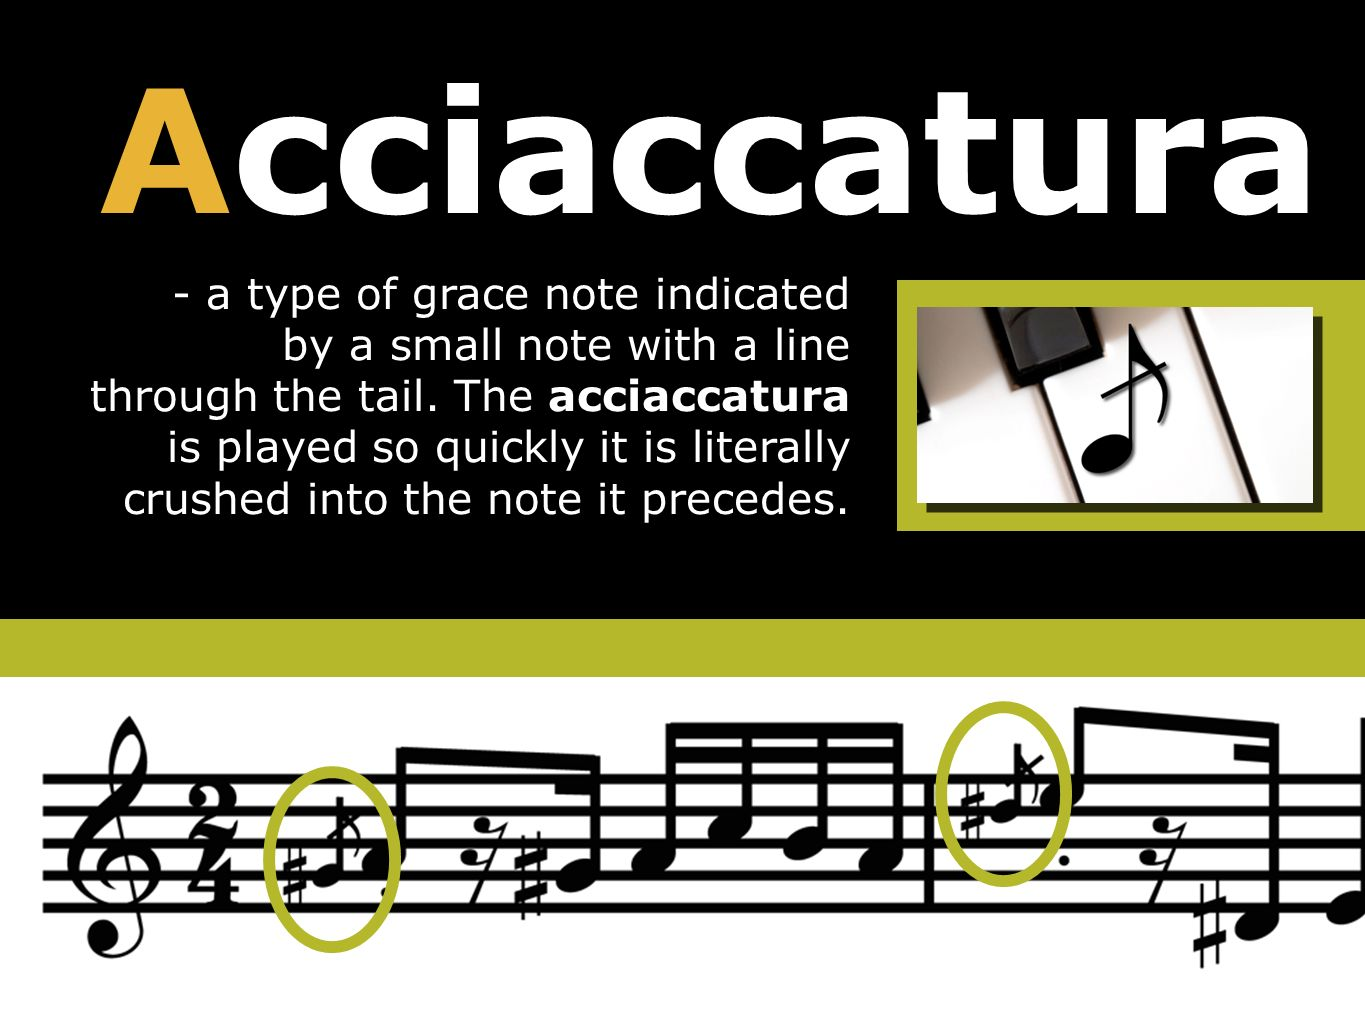 Acciaccatura - a type of grace note indicated by a small note with a line through the tail.